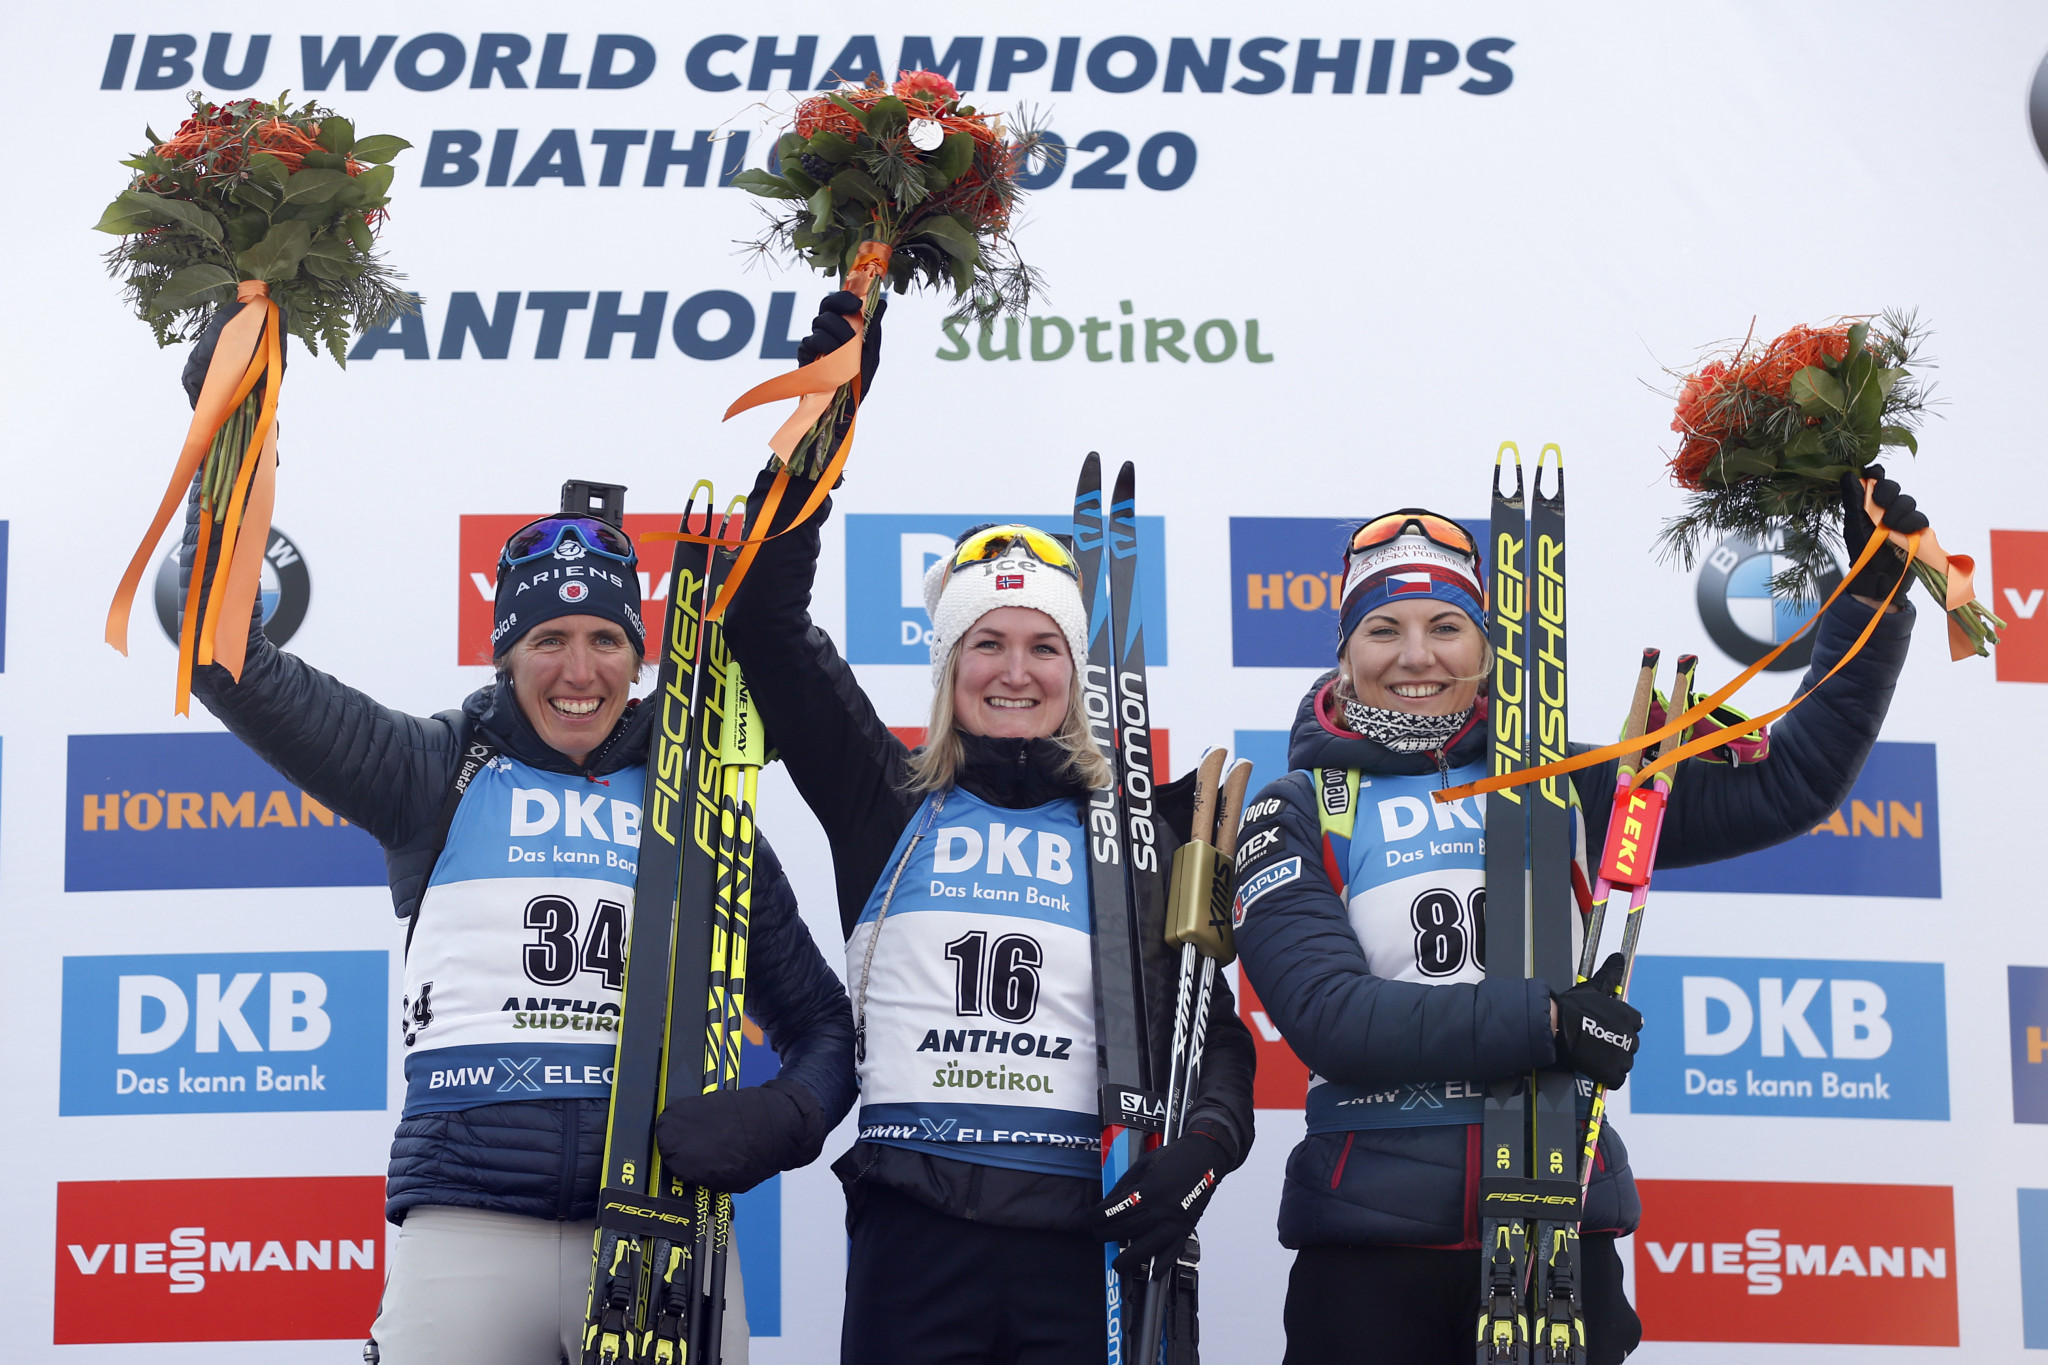 Røiseland earns maiden individual title at Biathlon World Championships